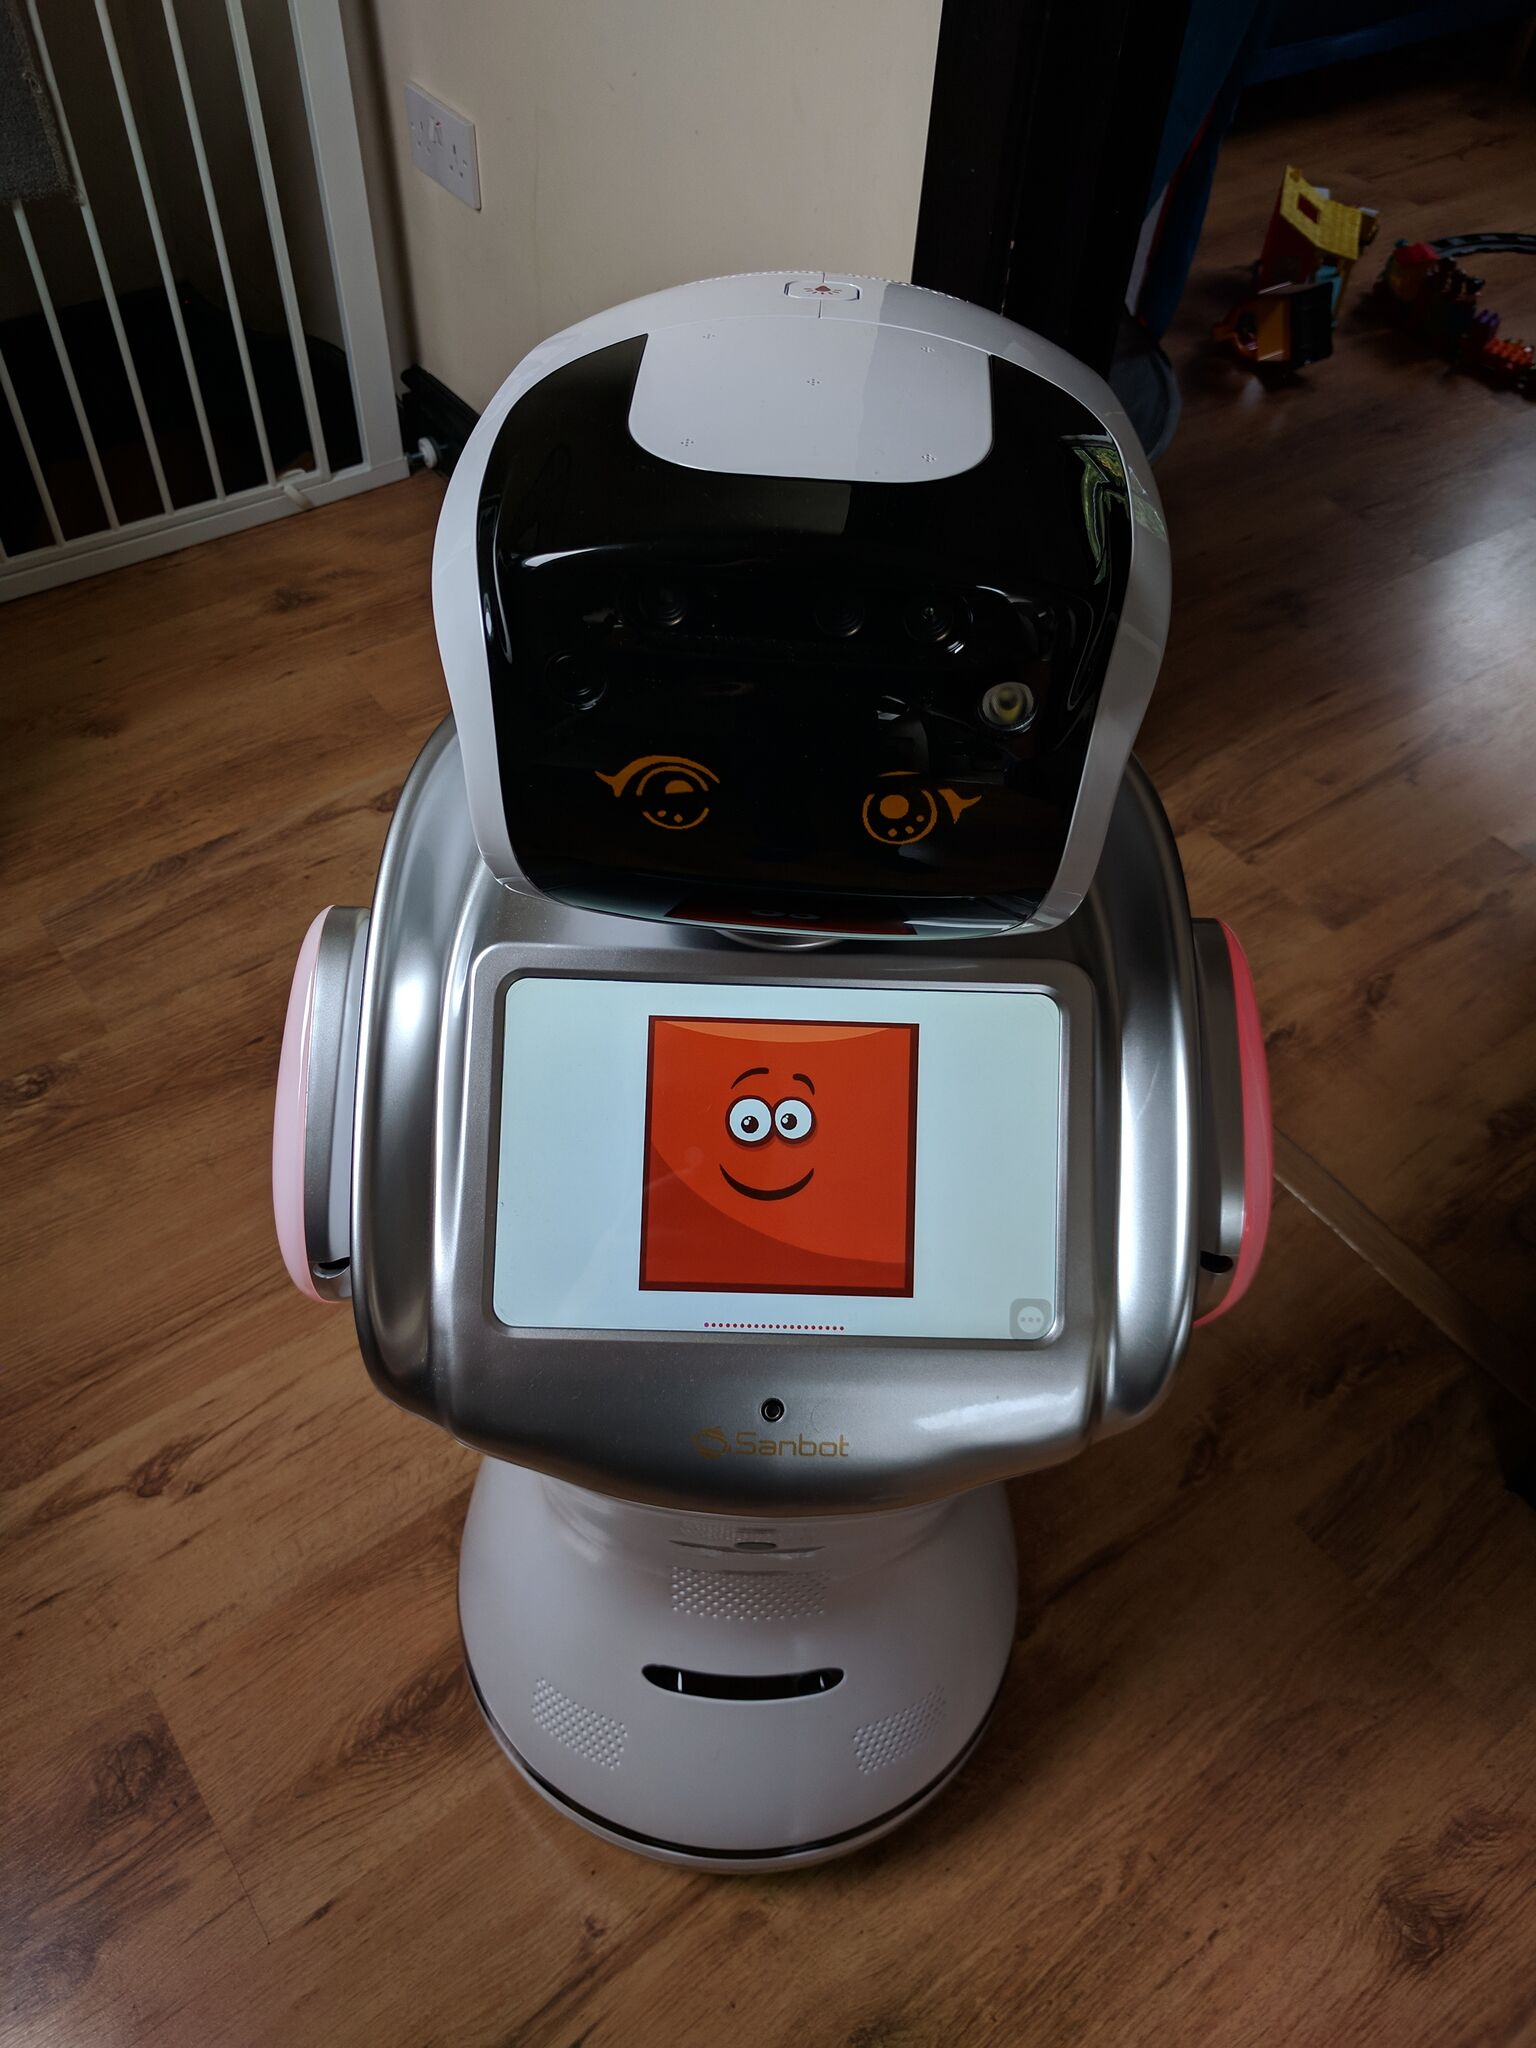 Learn Shapes With Sanbot